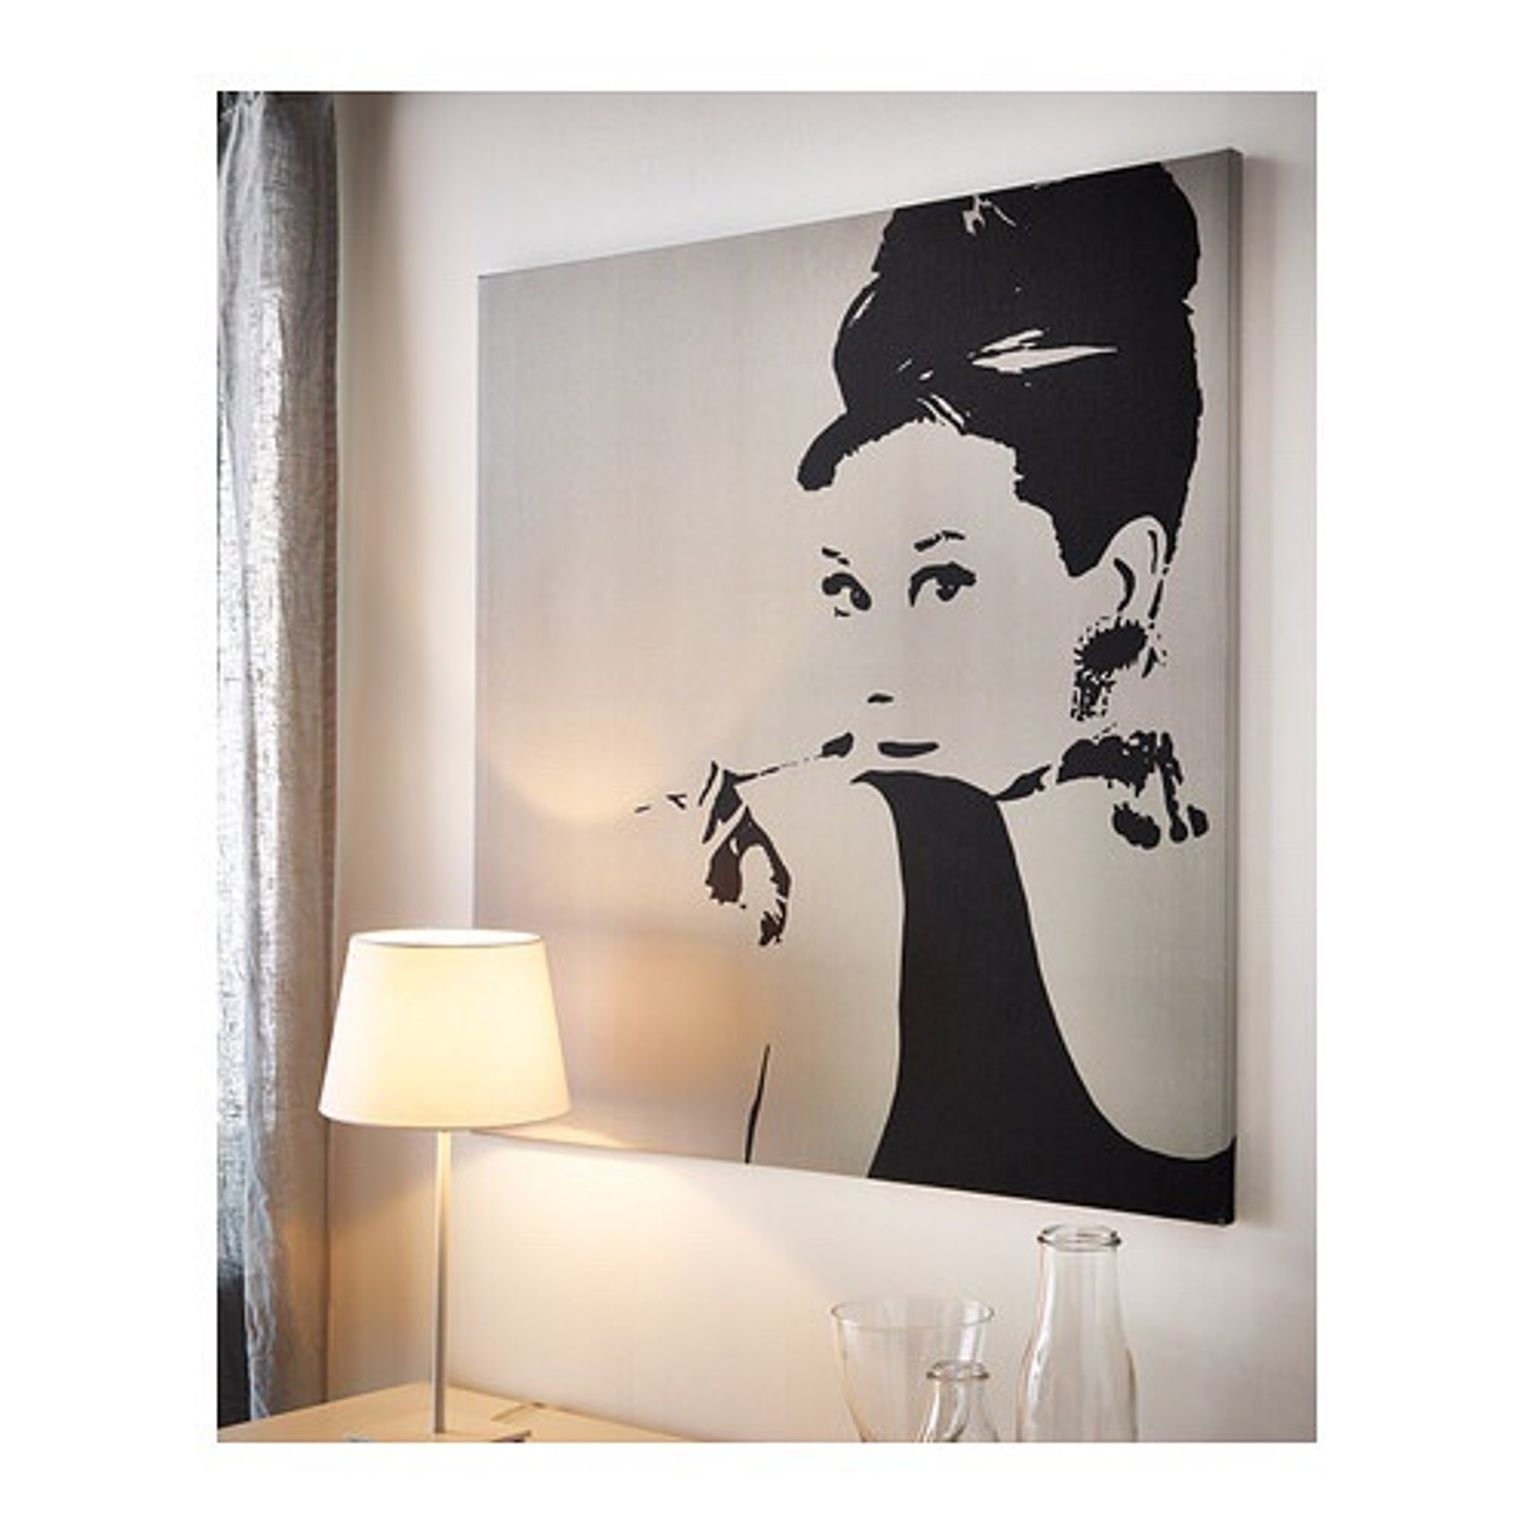 Incredible Pjaetteryd Picture Ikea For Wall Art Canvas Styles And Regarding Ikea Canvas Wall Art (View 11 of 20)